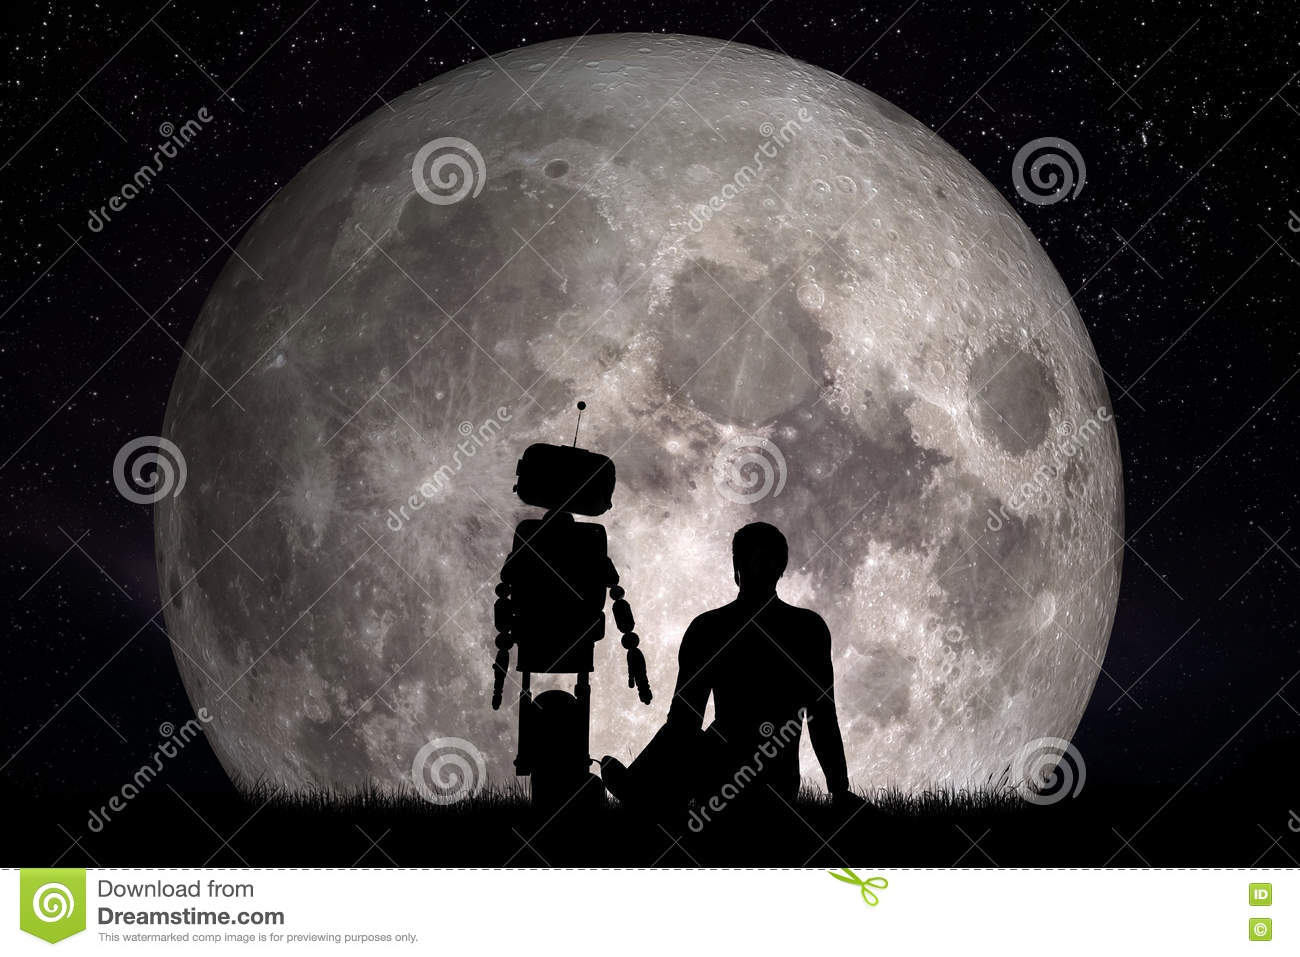 Man and his robot friend looking on moon. Future concept, artificial intelligence